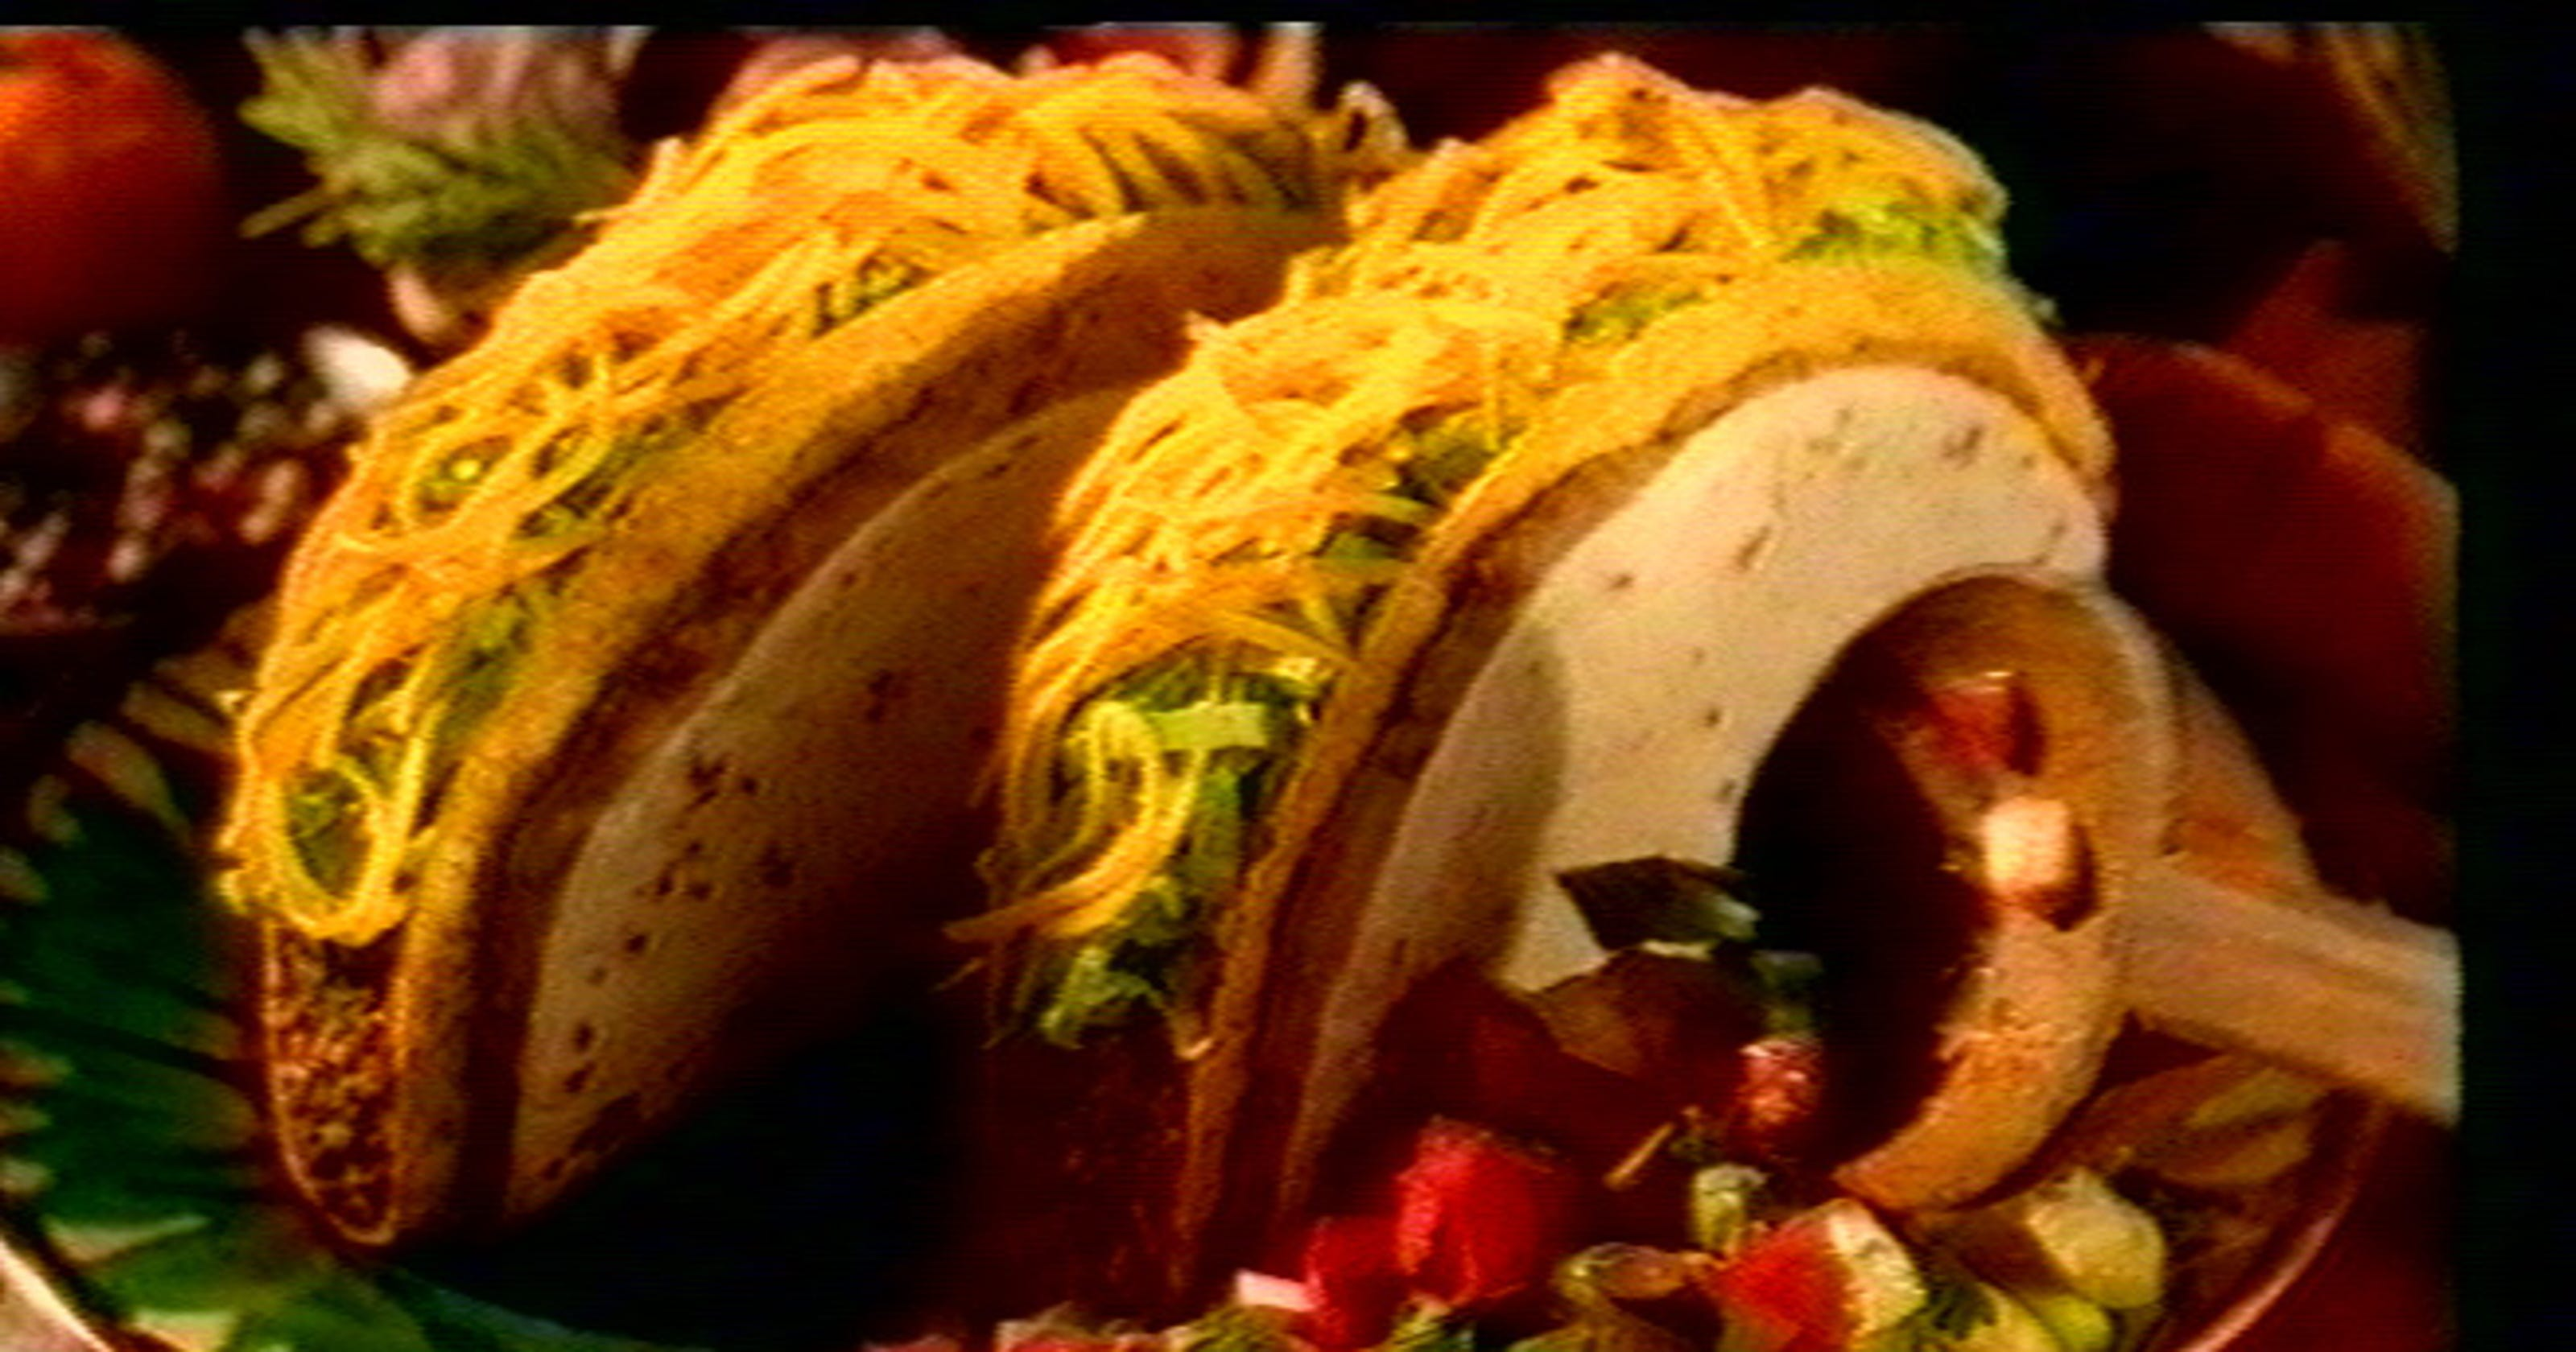 What's actually in Taco Bell beef?